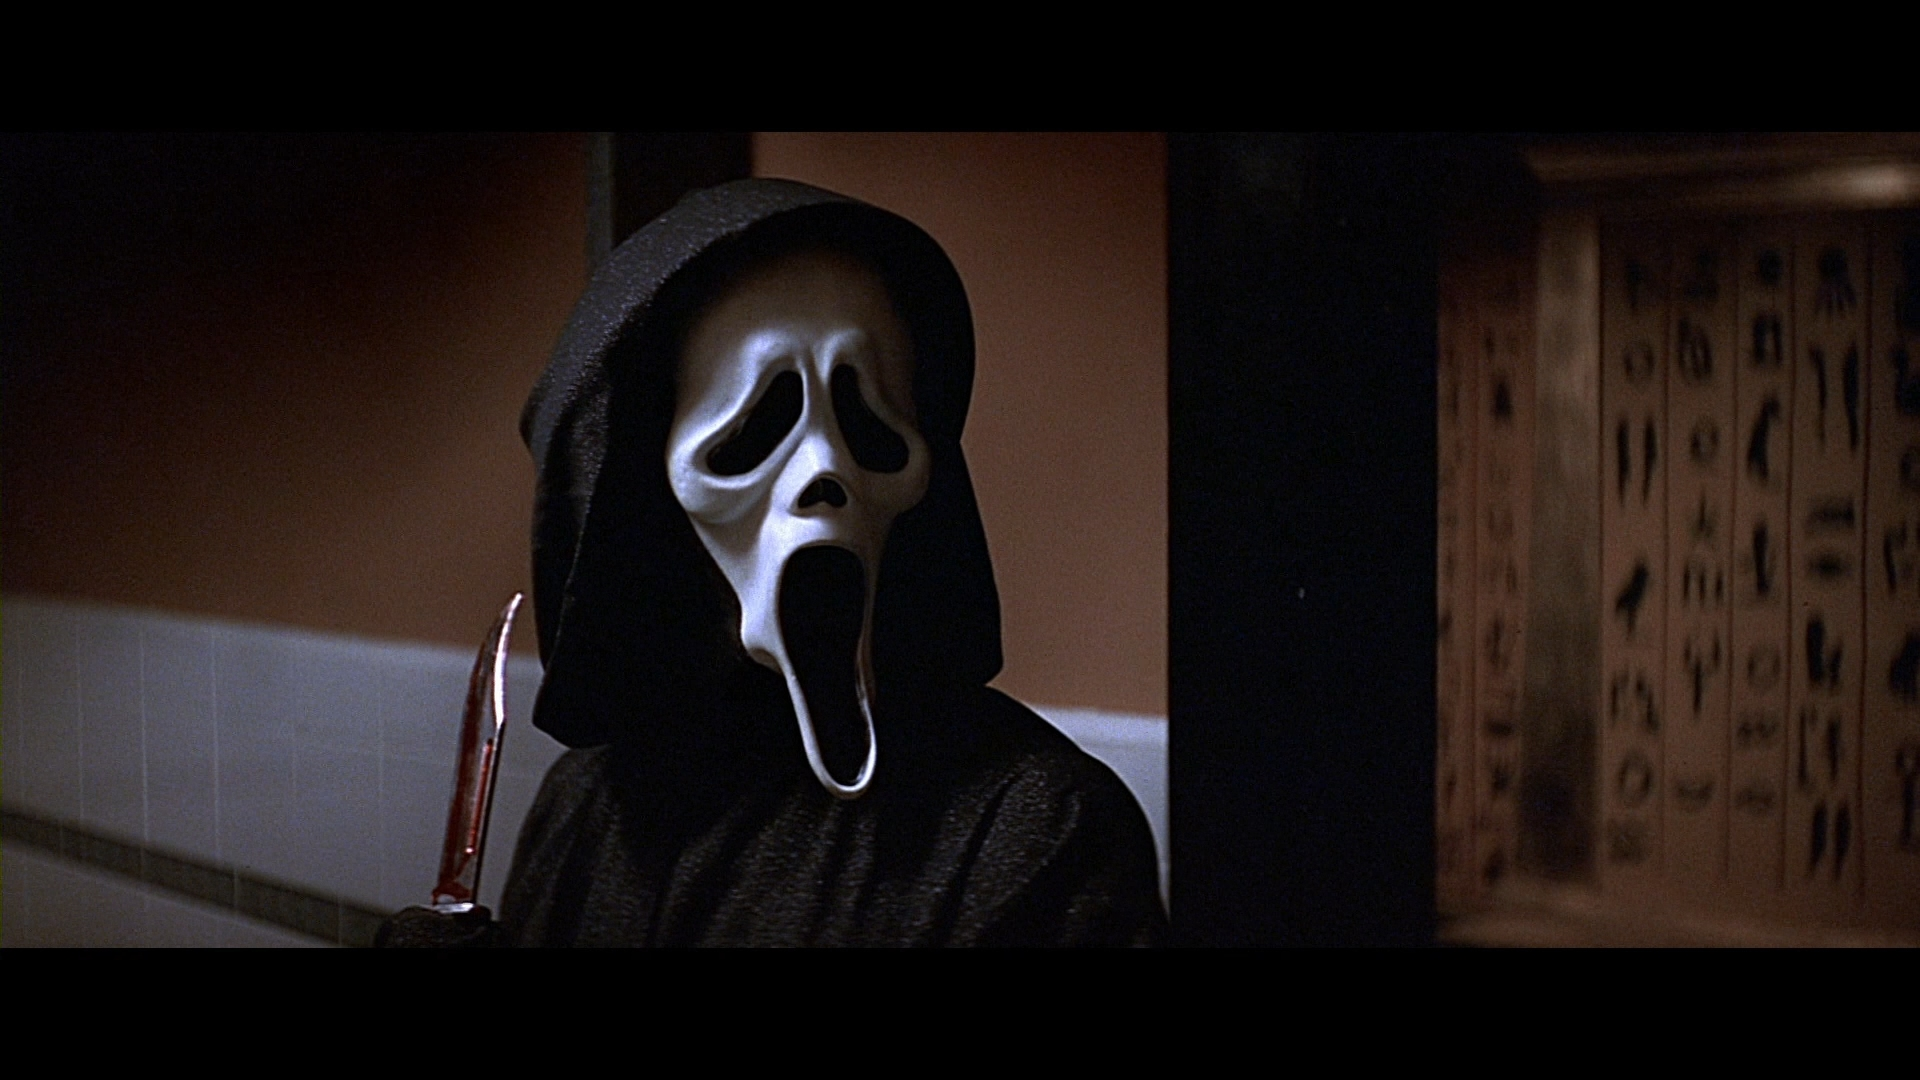 Scream bathroom scene